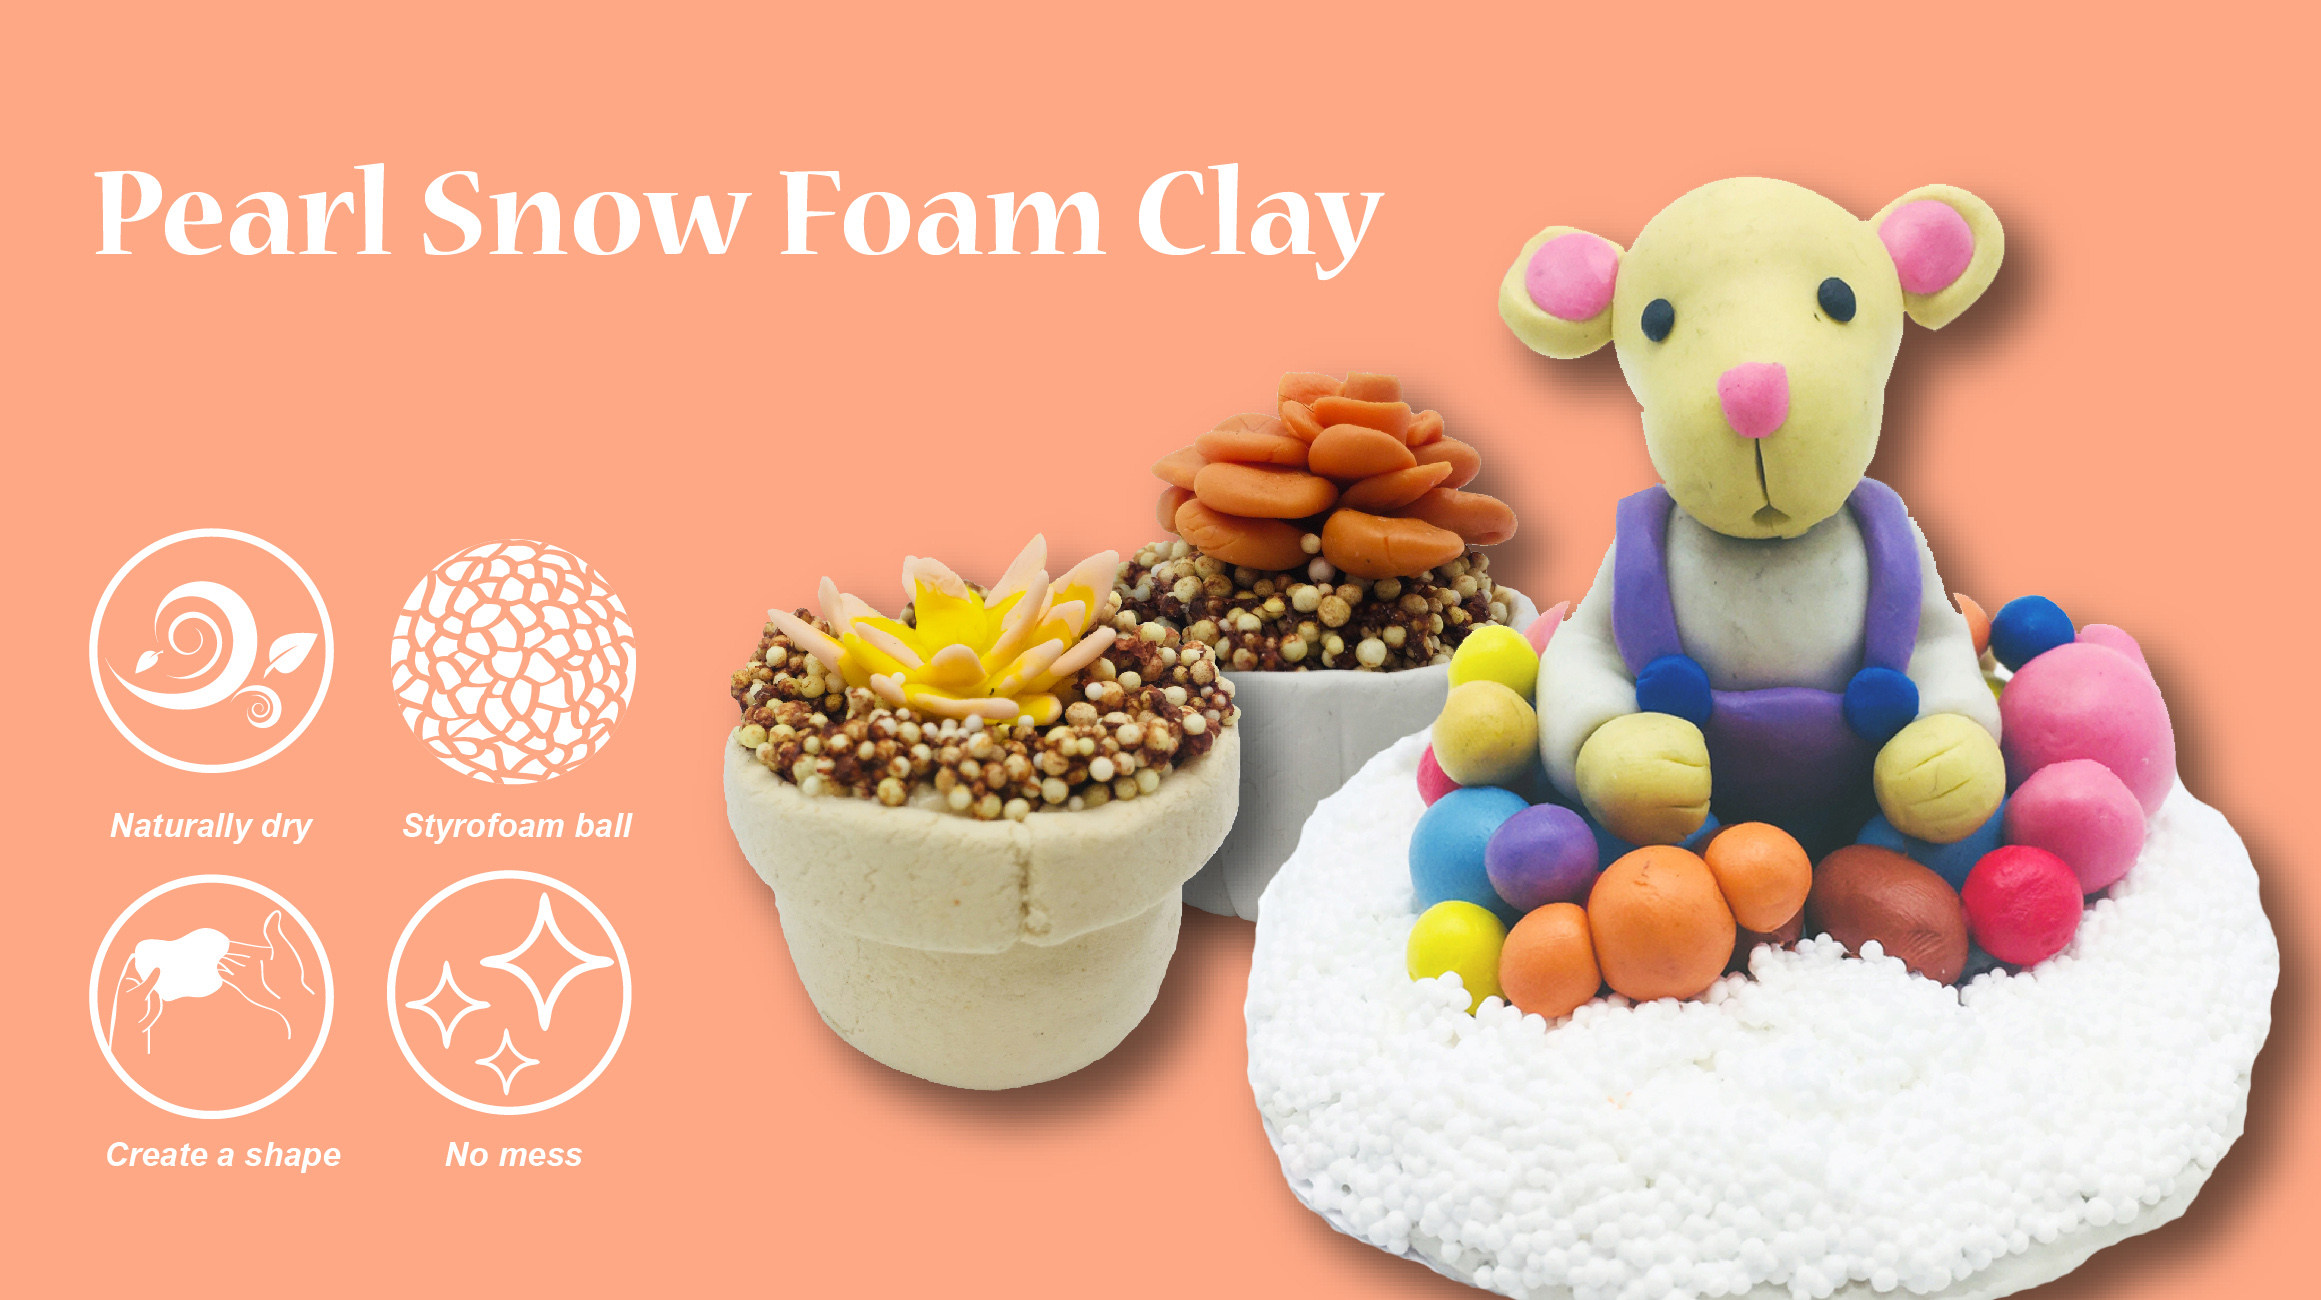 Foam clay slime mixing